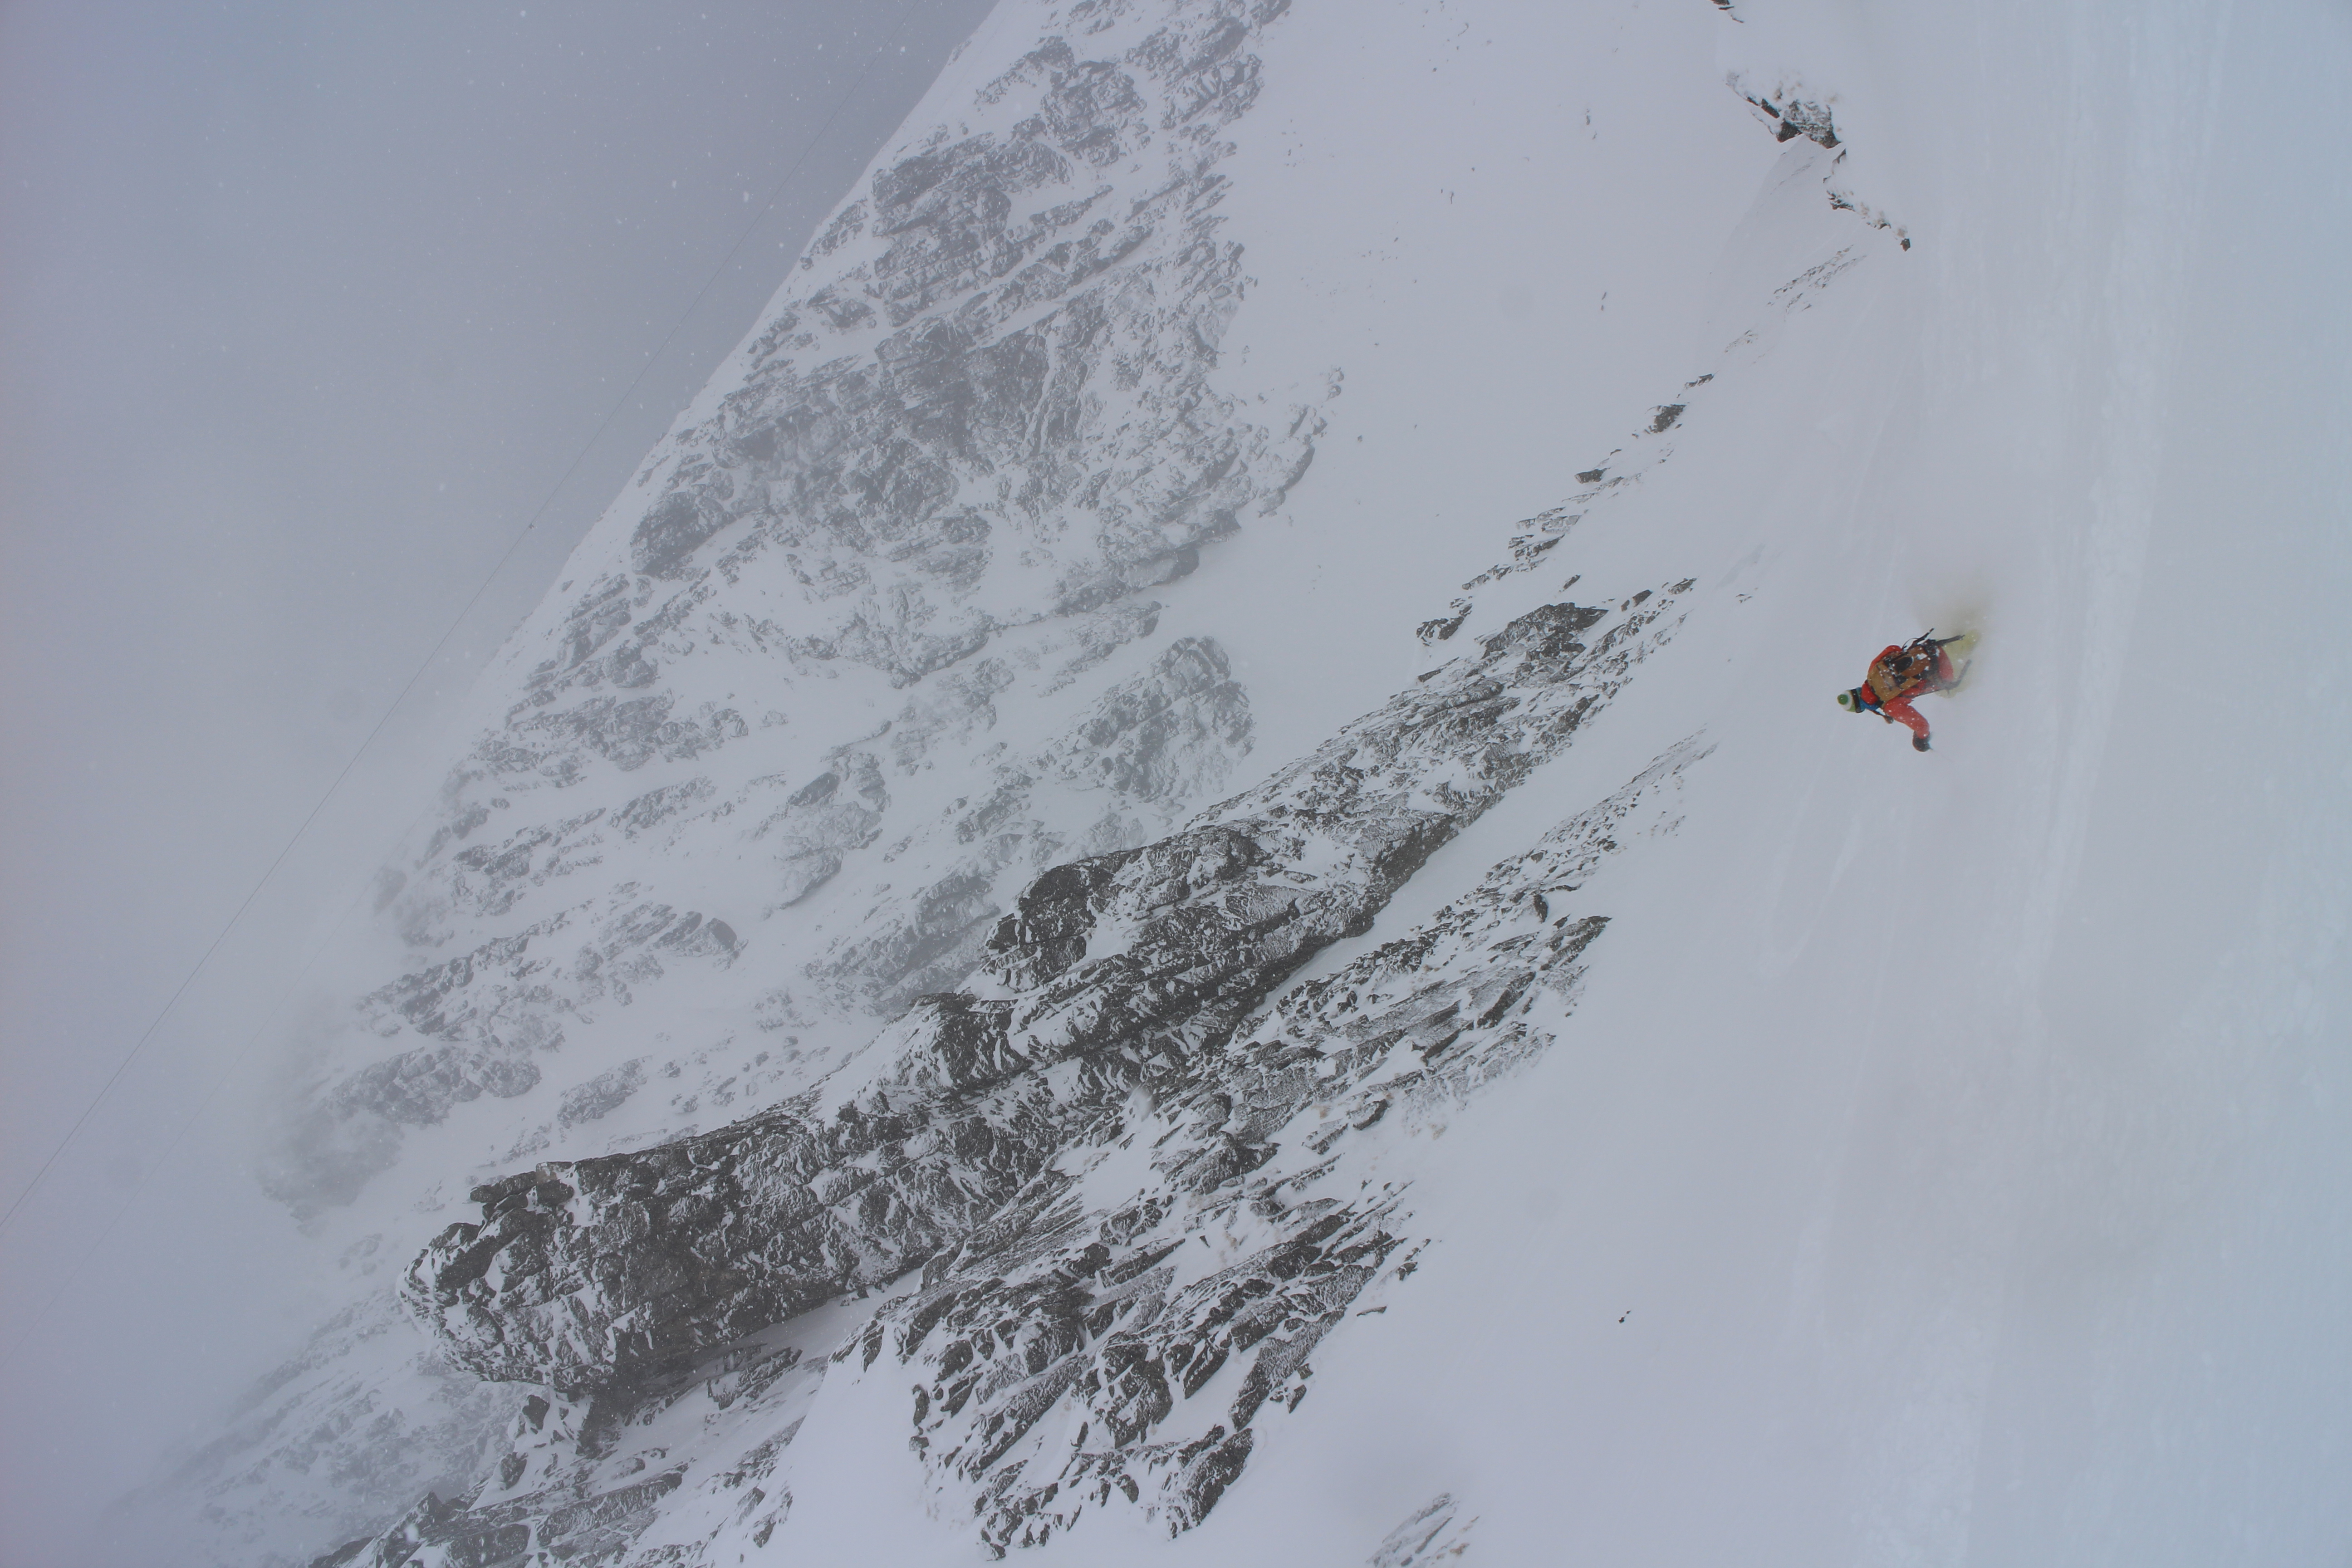 Couloir skiing in Slovakia.